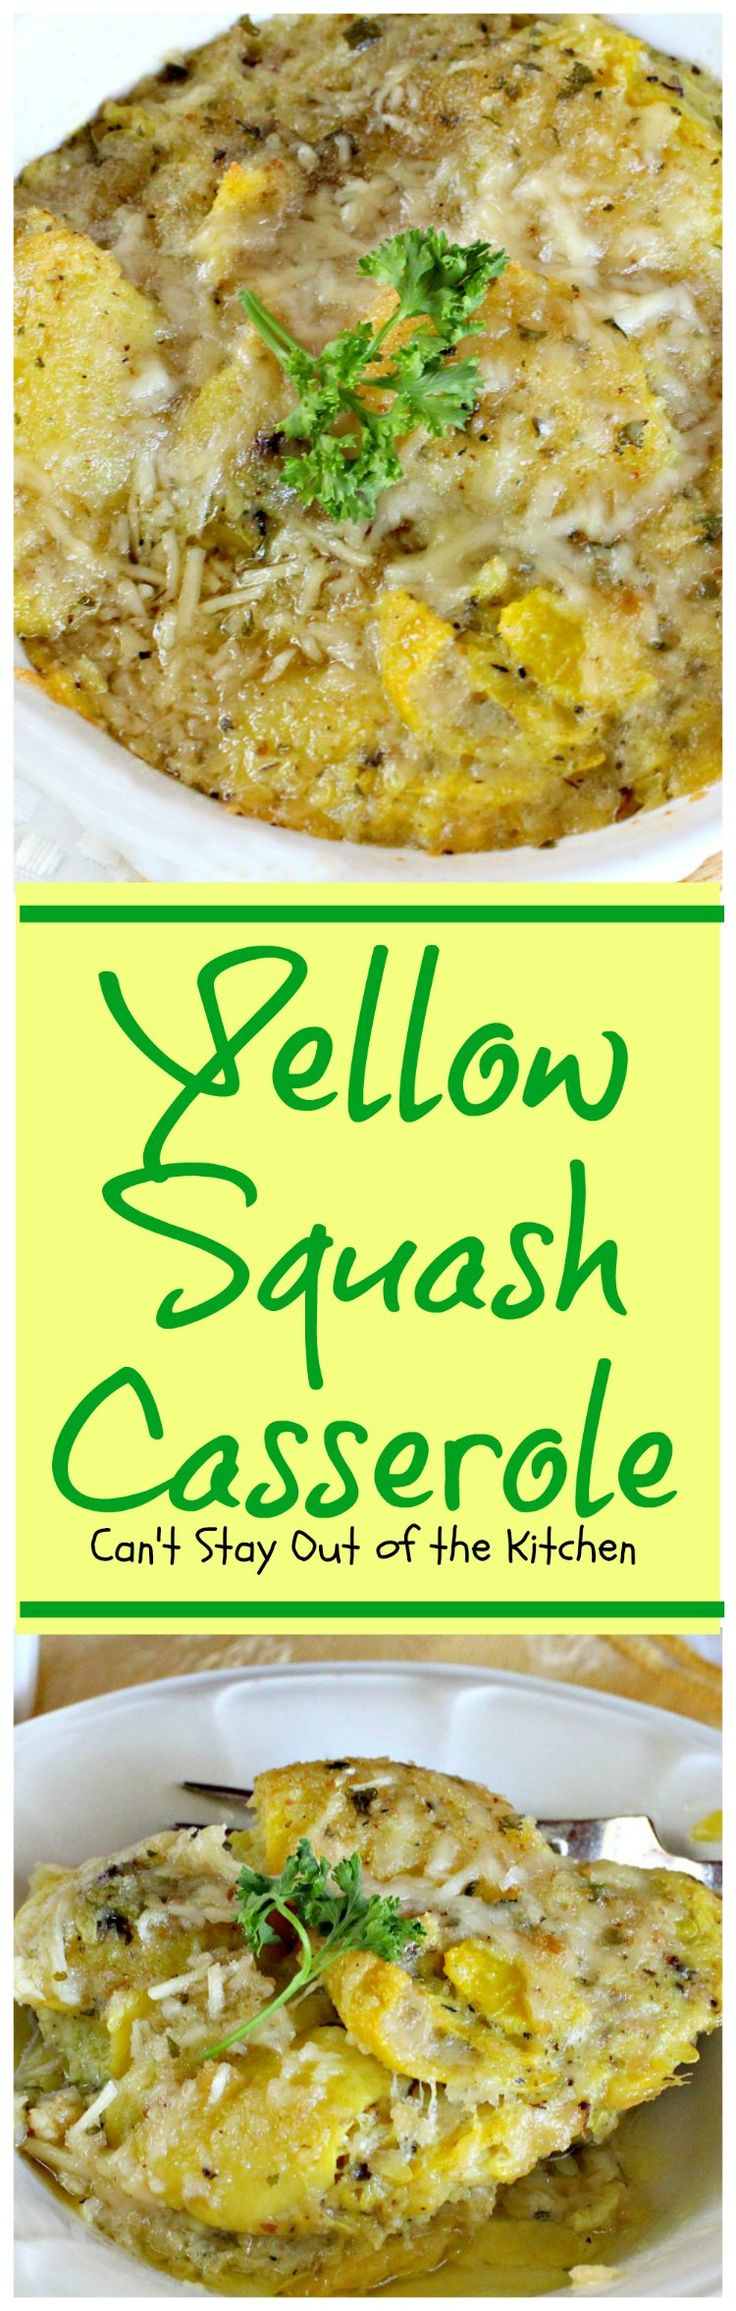 Yellow Squash Casserole | Can't Stay Out of the Kitchen | this scrumptious #casserole is perfect for #Easter dinner or other #holiday meals. #yellowsquash